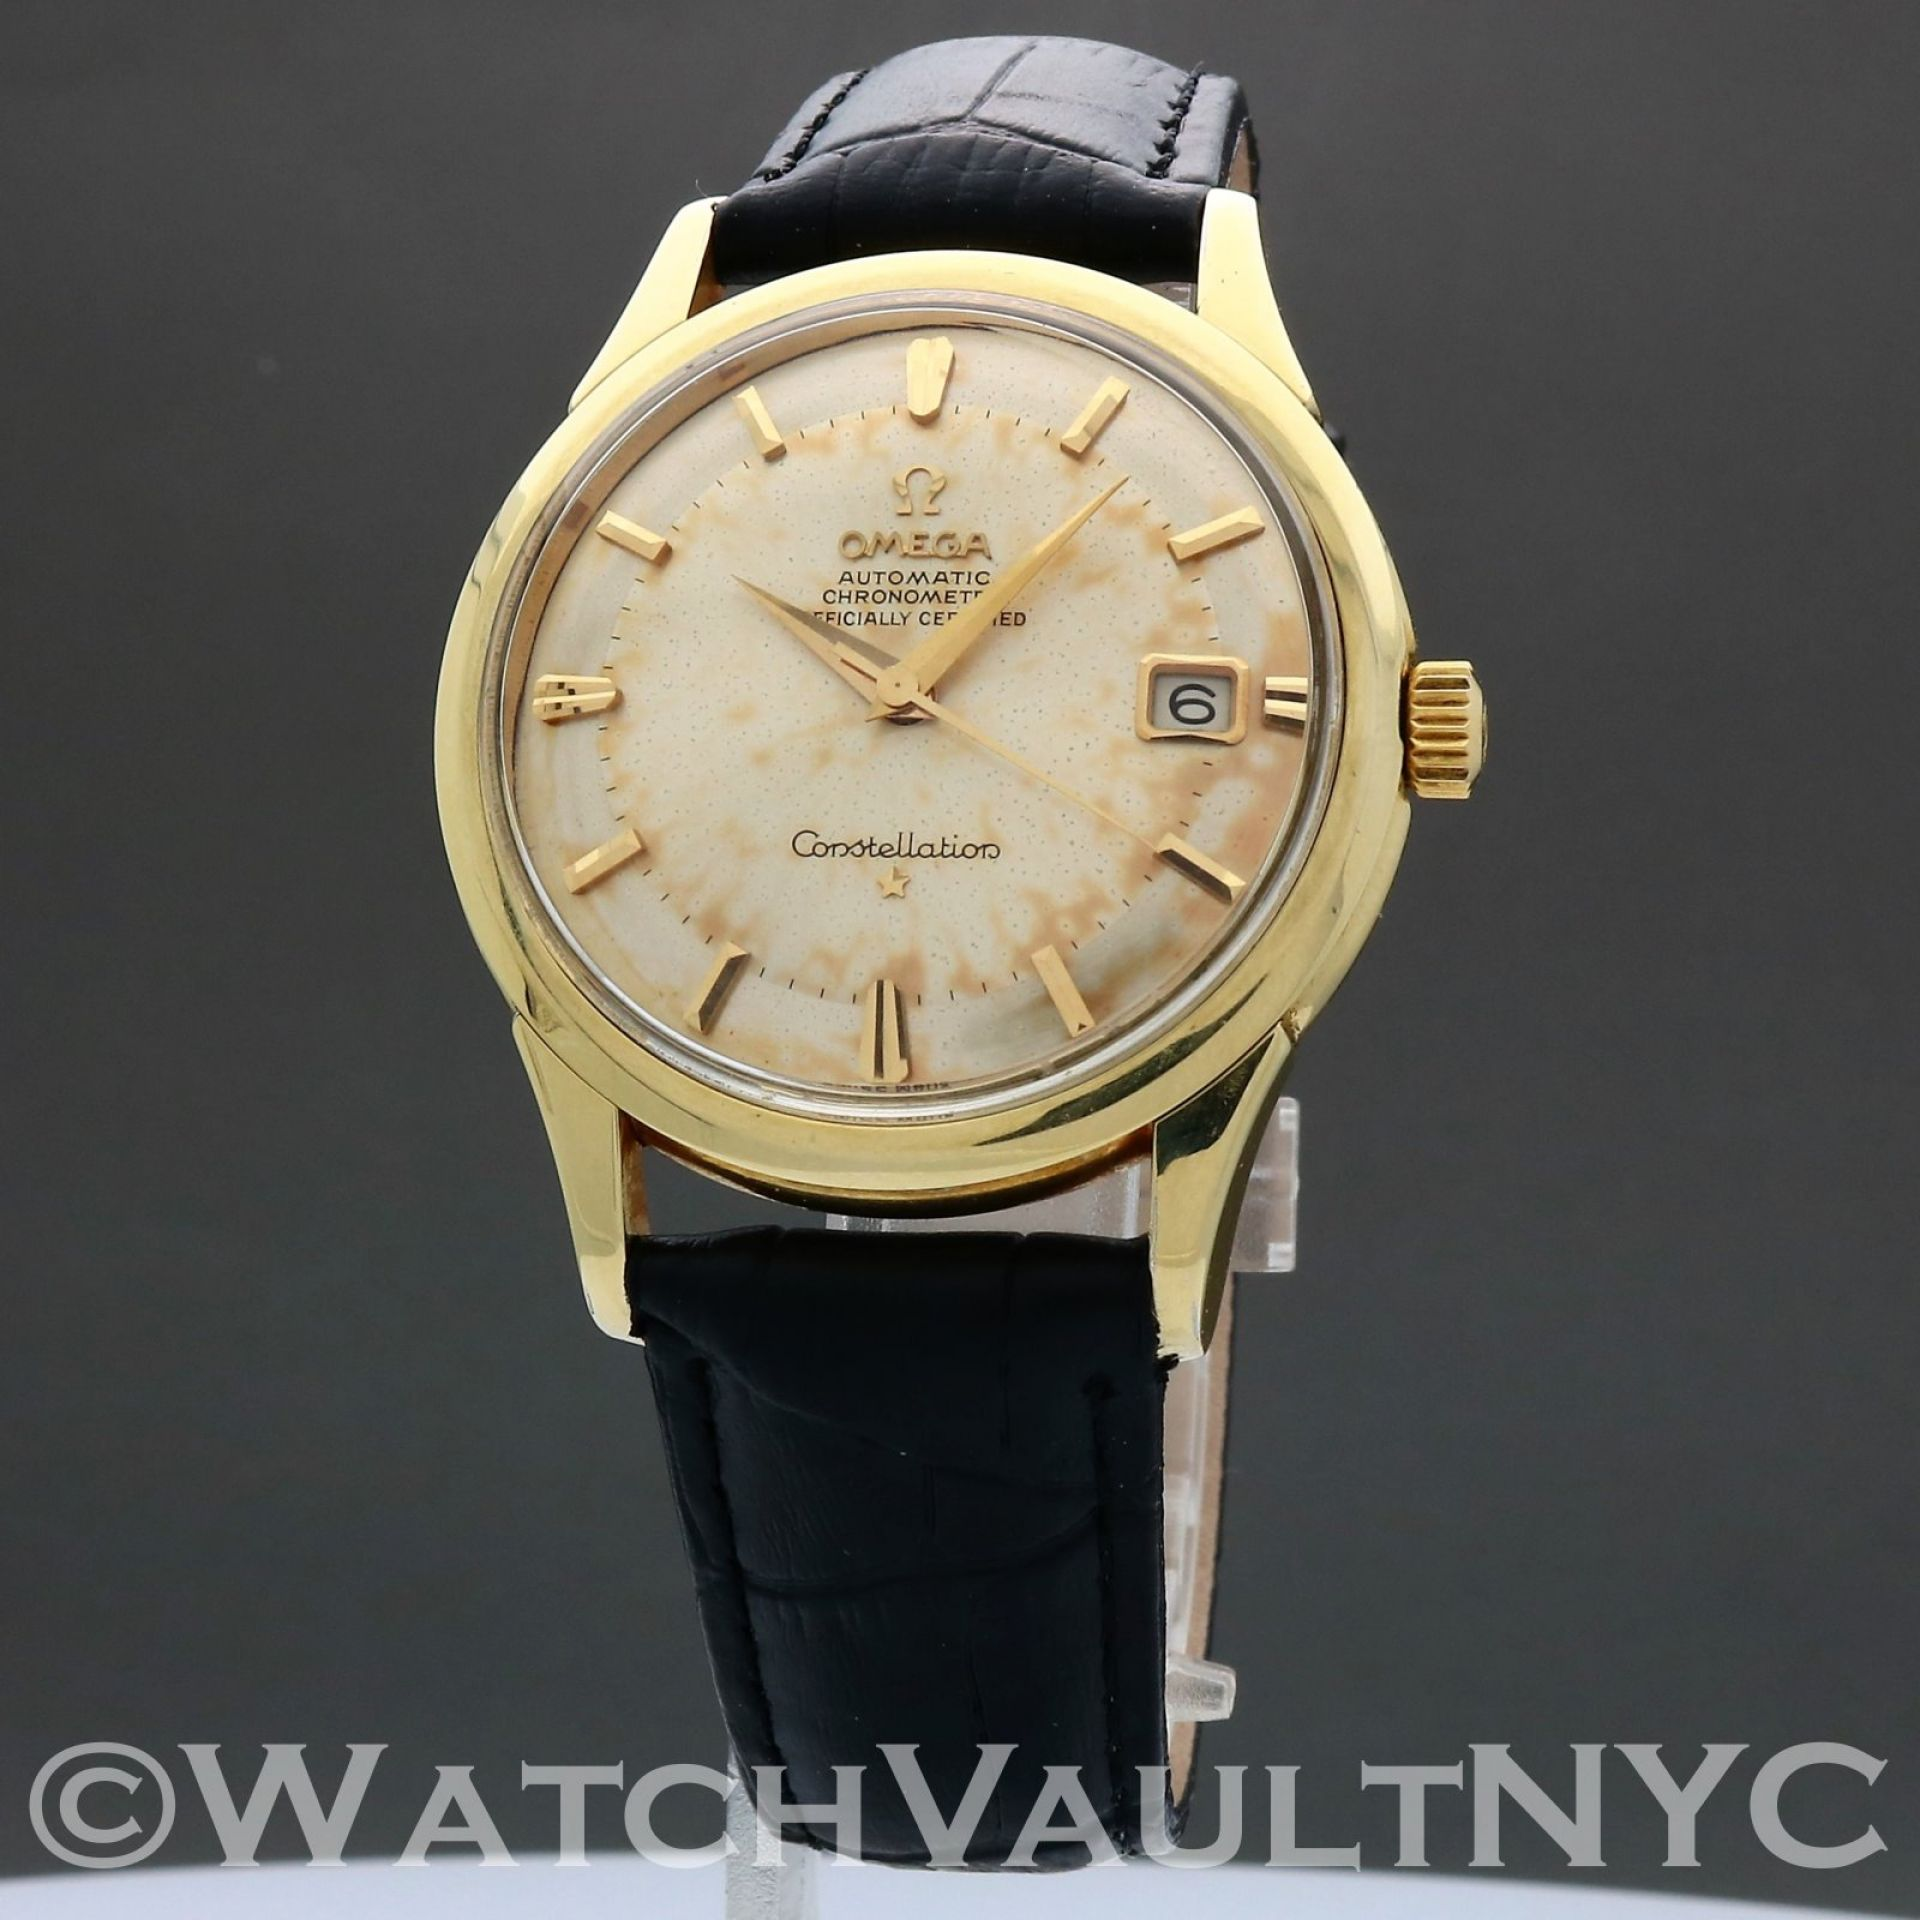 Omega Constellation ST168.001 Jumbo 1963 Vintage 37mm Auto RK307